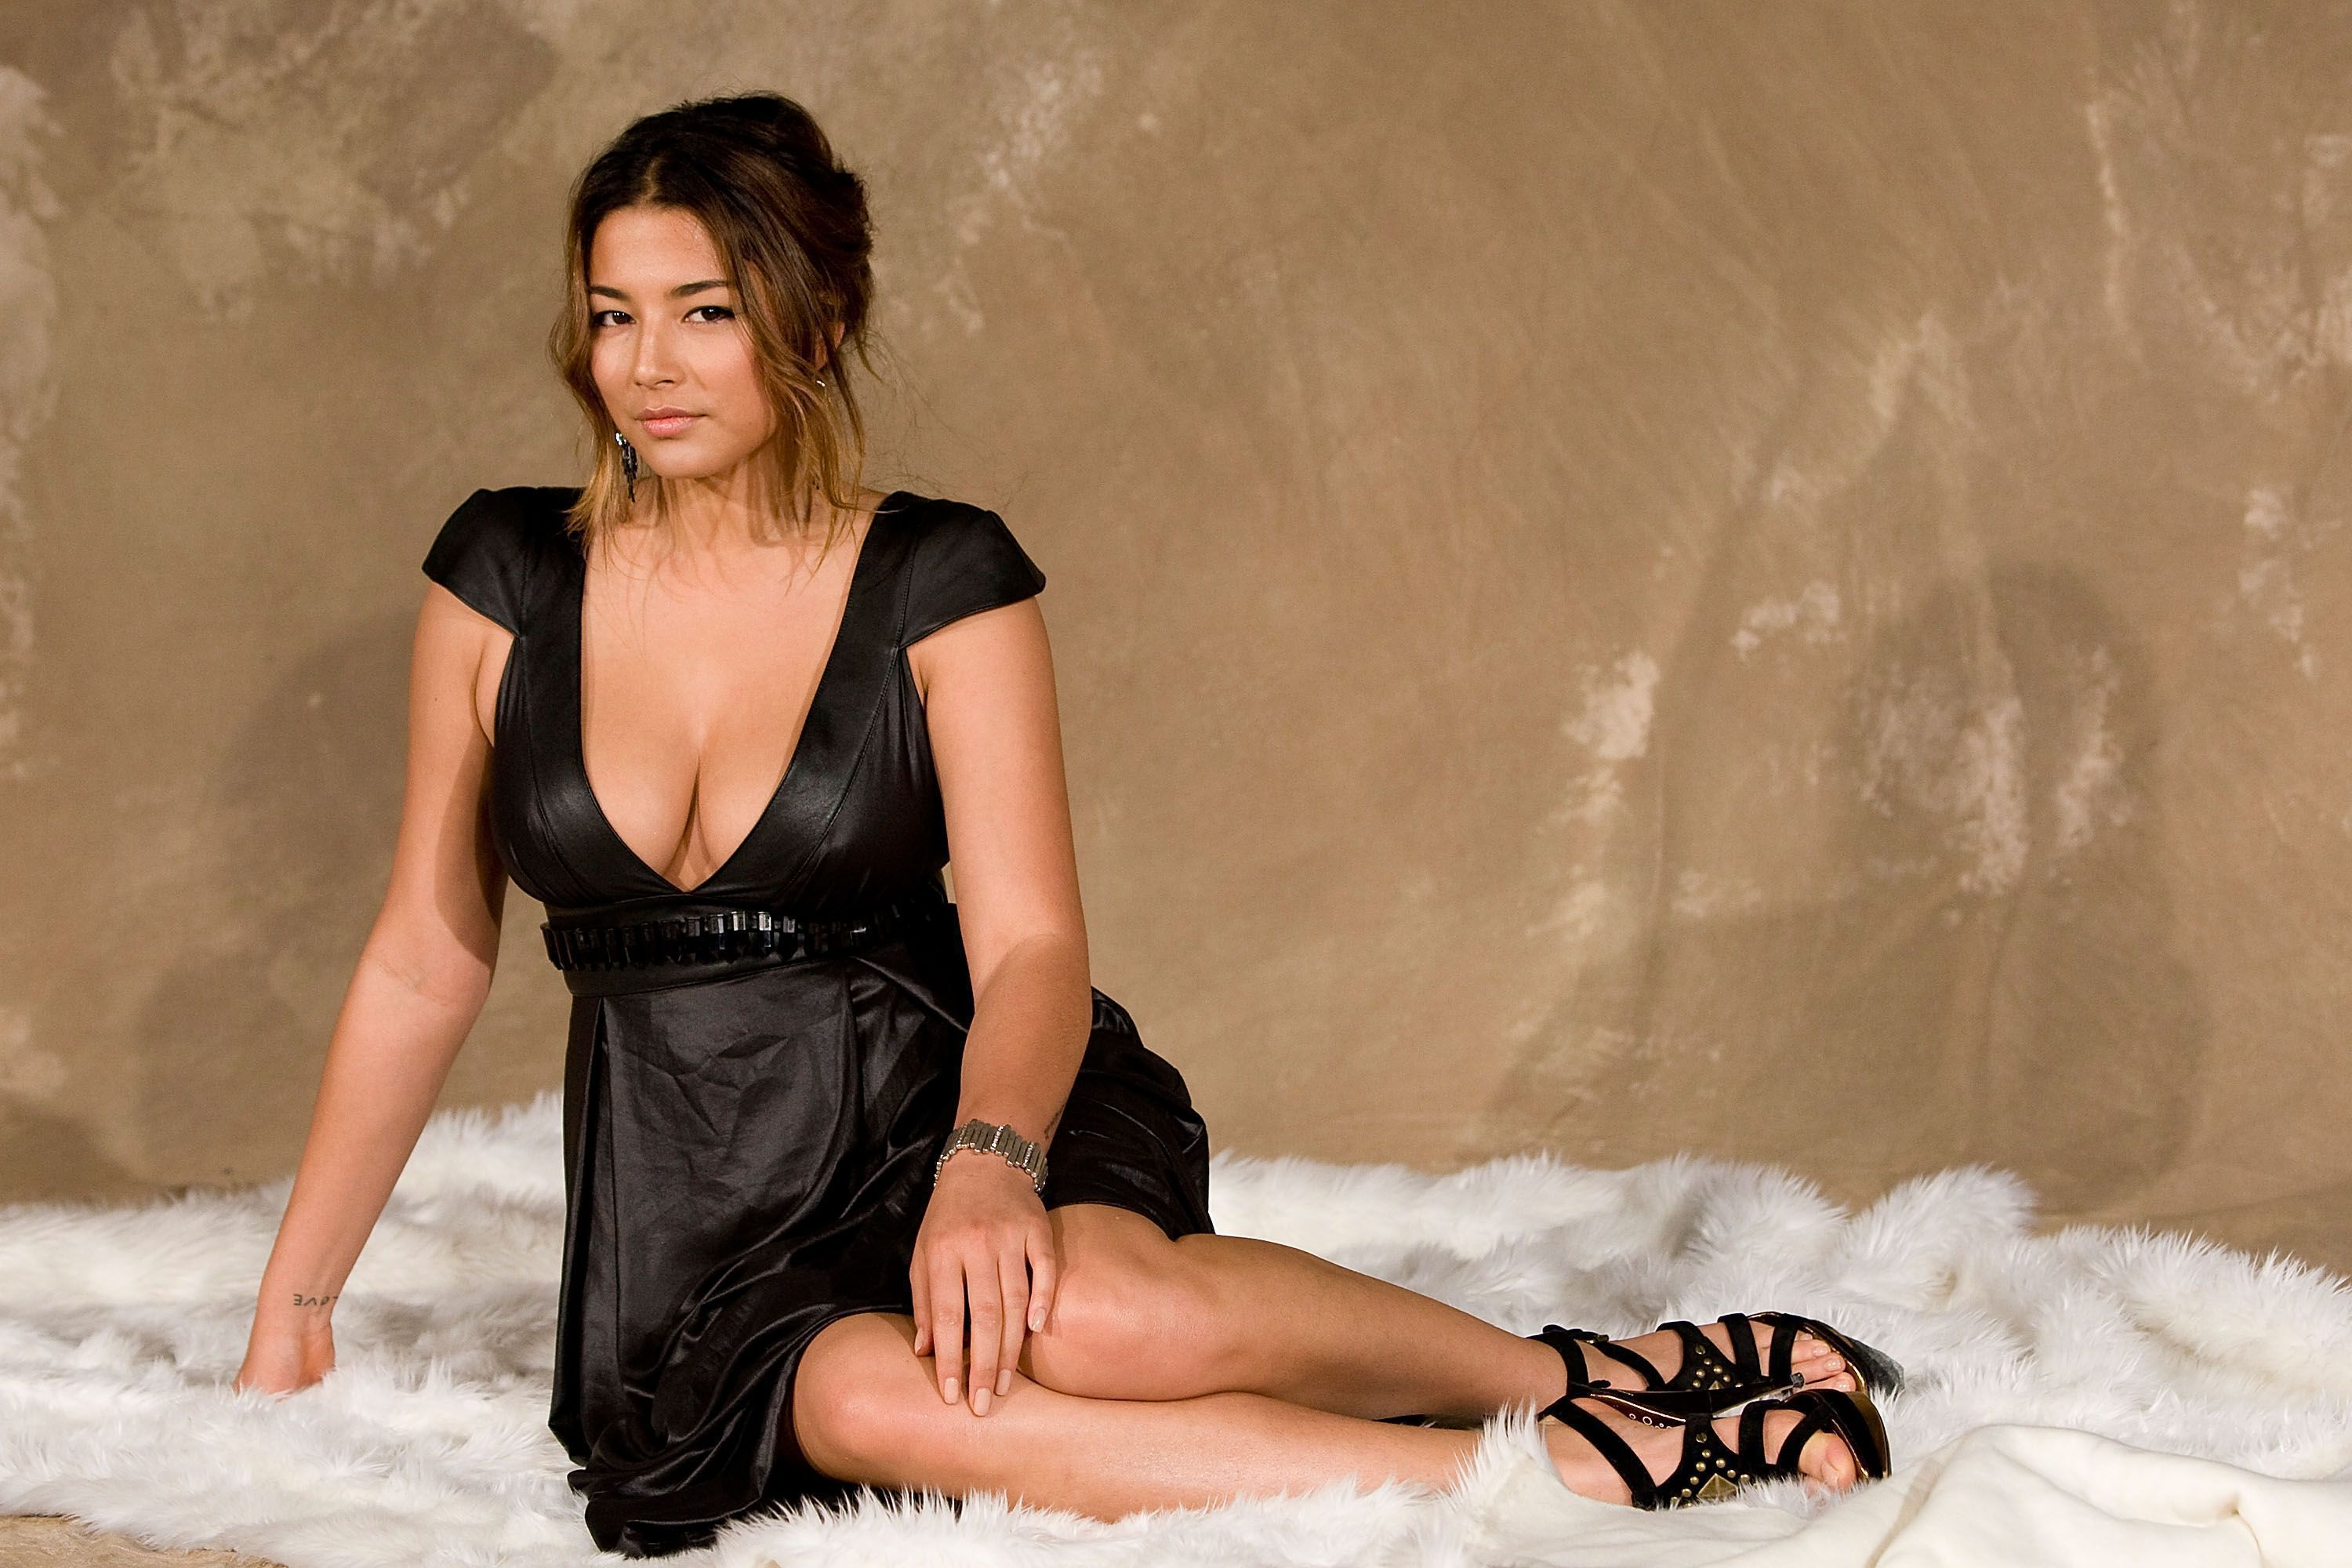 3000x2000 - Jessica Gomes Wallpapers 30